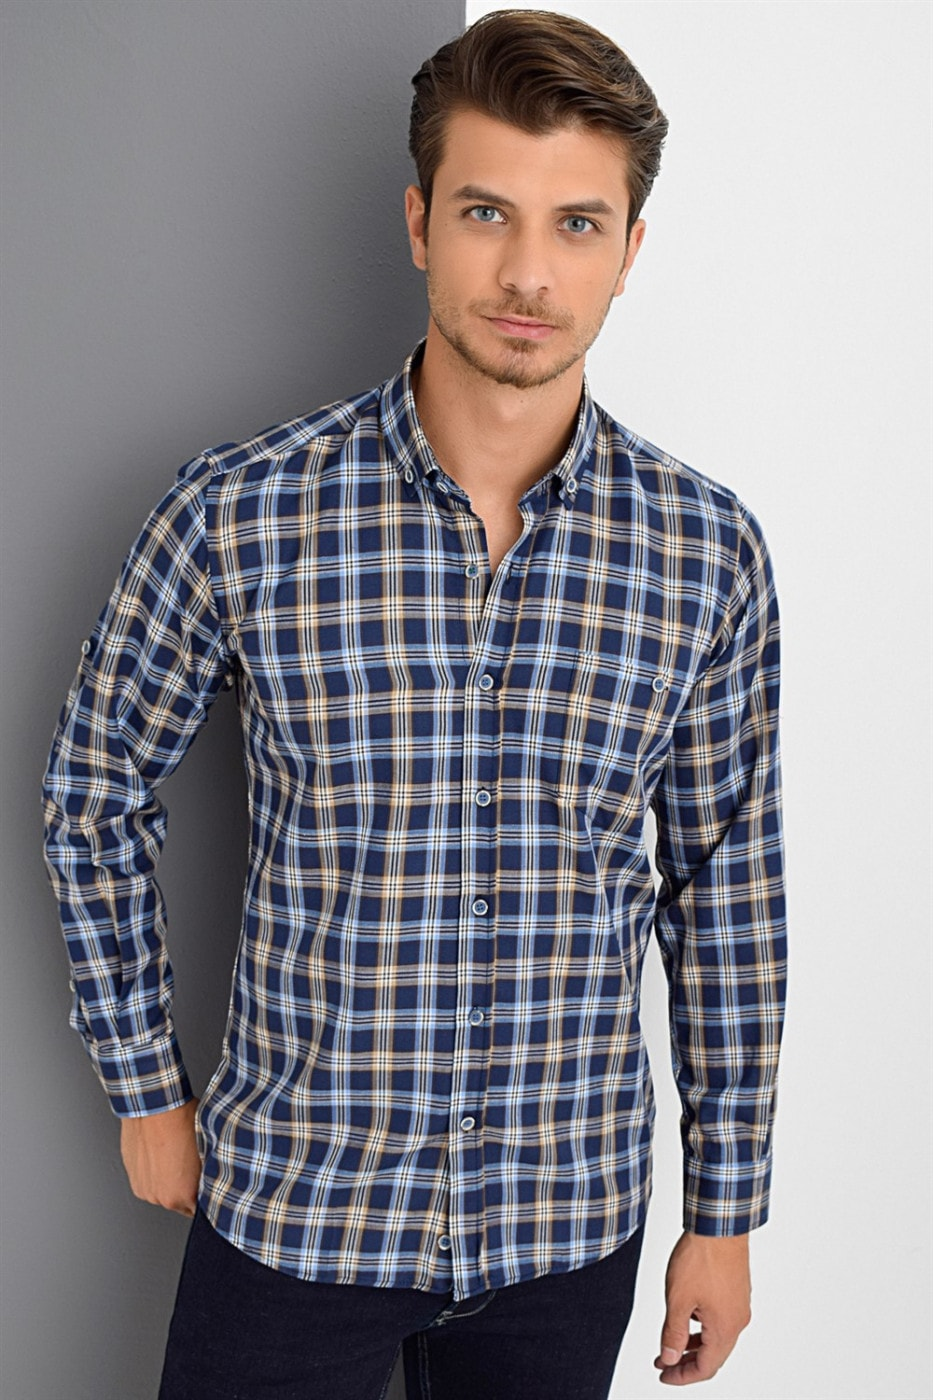 G672 DEWBERRY MEN's SHIRT-NICKNAME- COFFEE